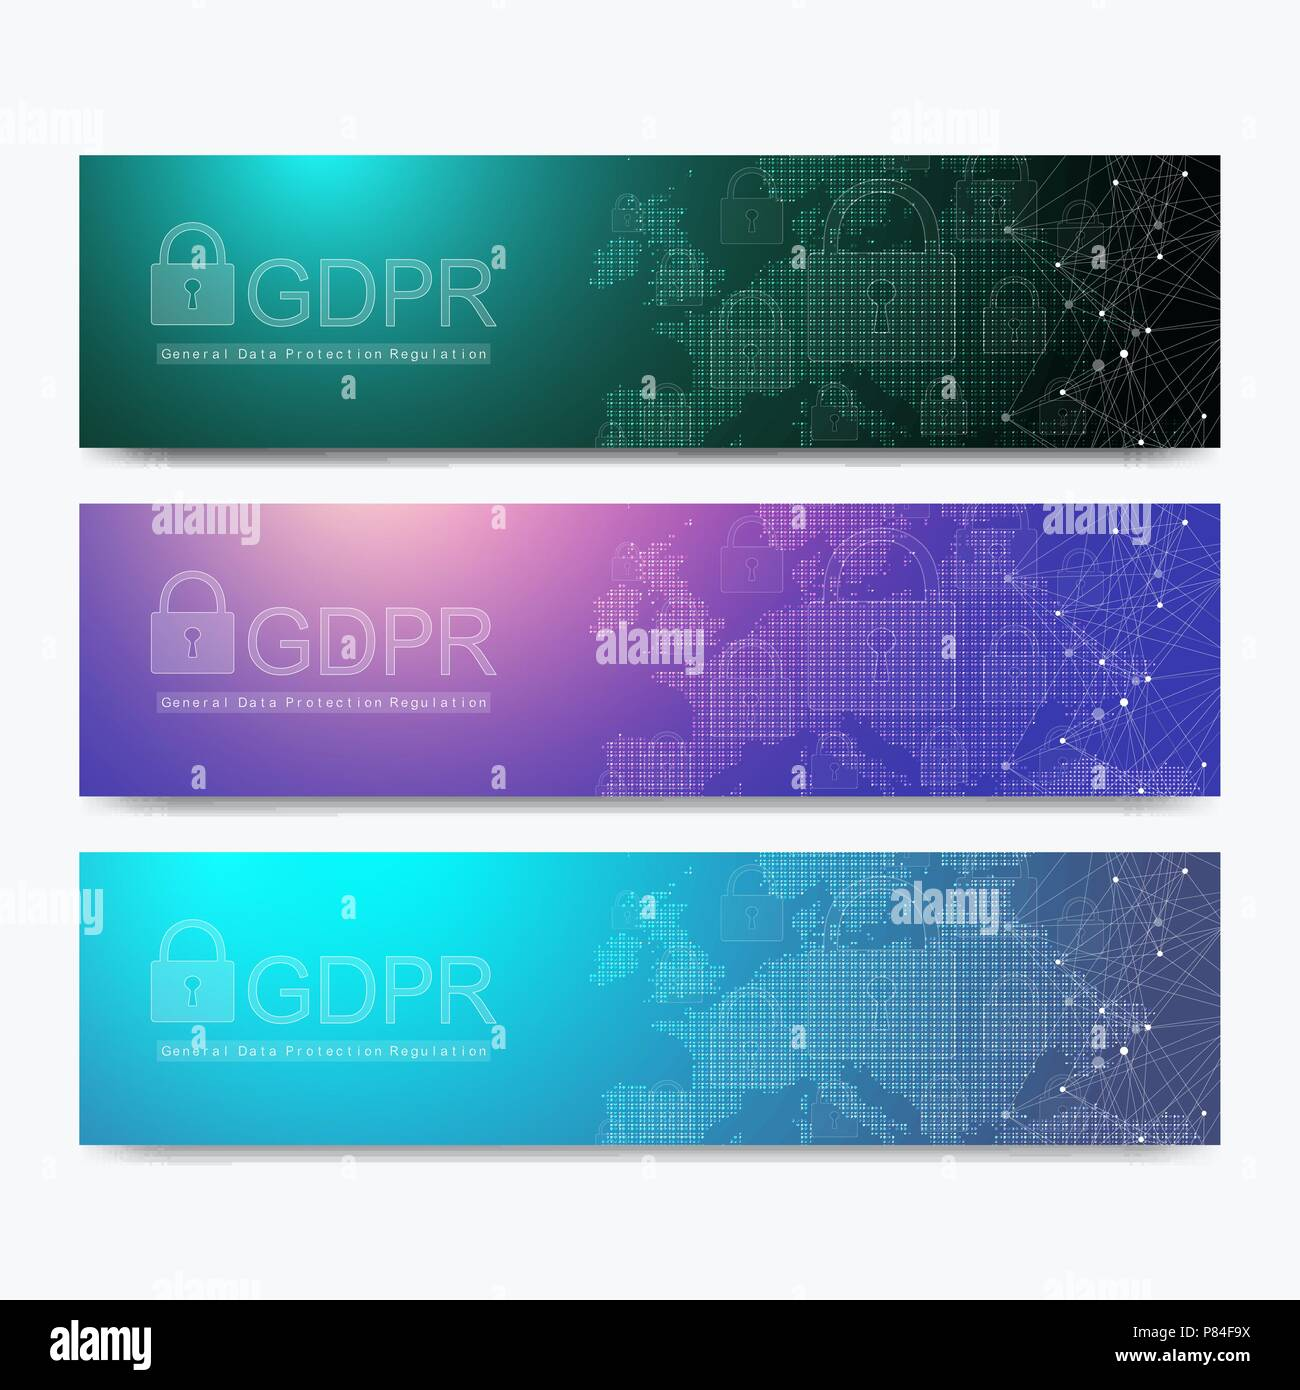 Banners GDPR - General Data Protection Regulation. Protection of personal data. Vector illustration. - Stock Image